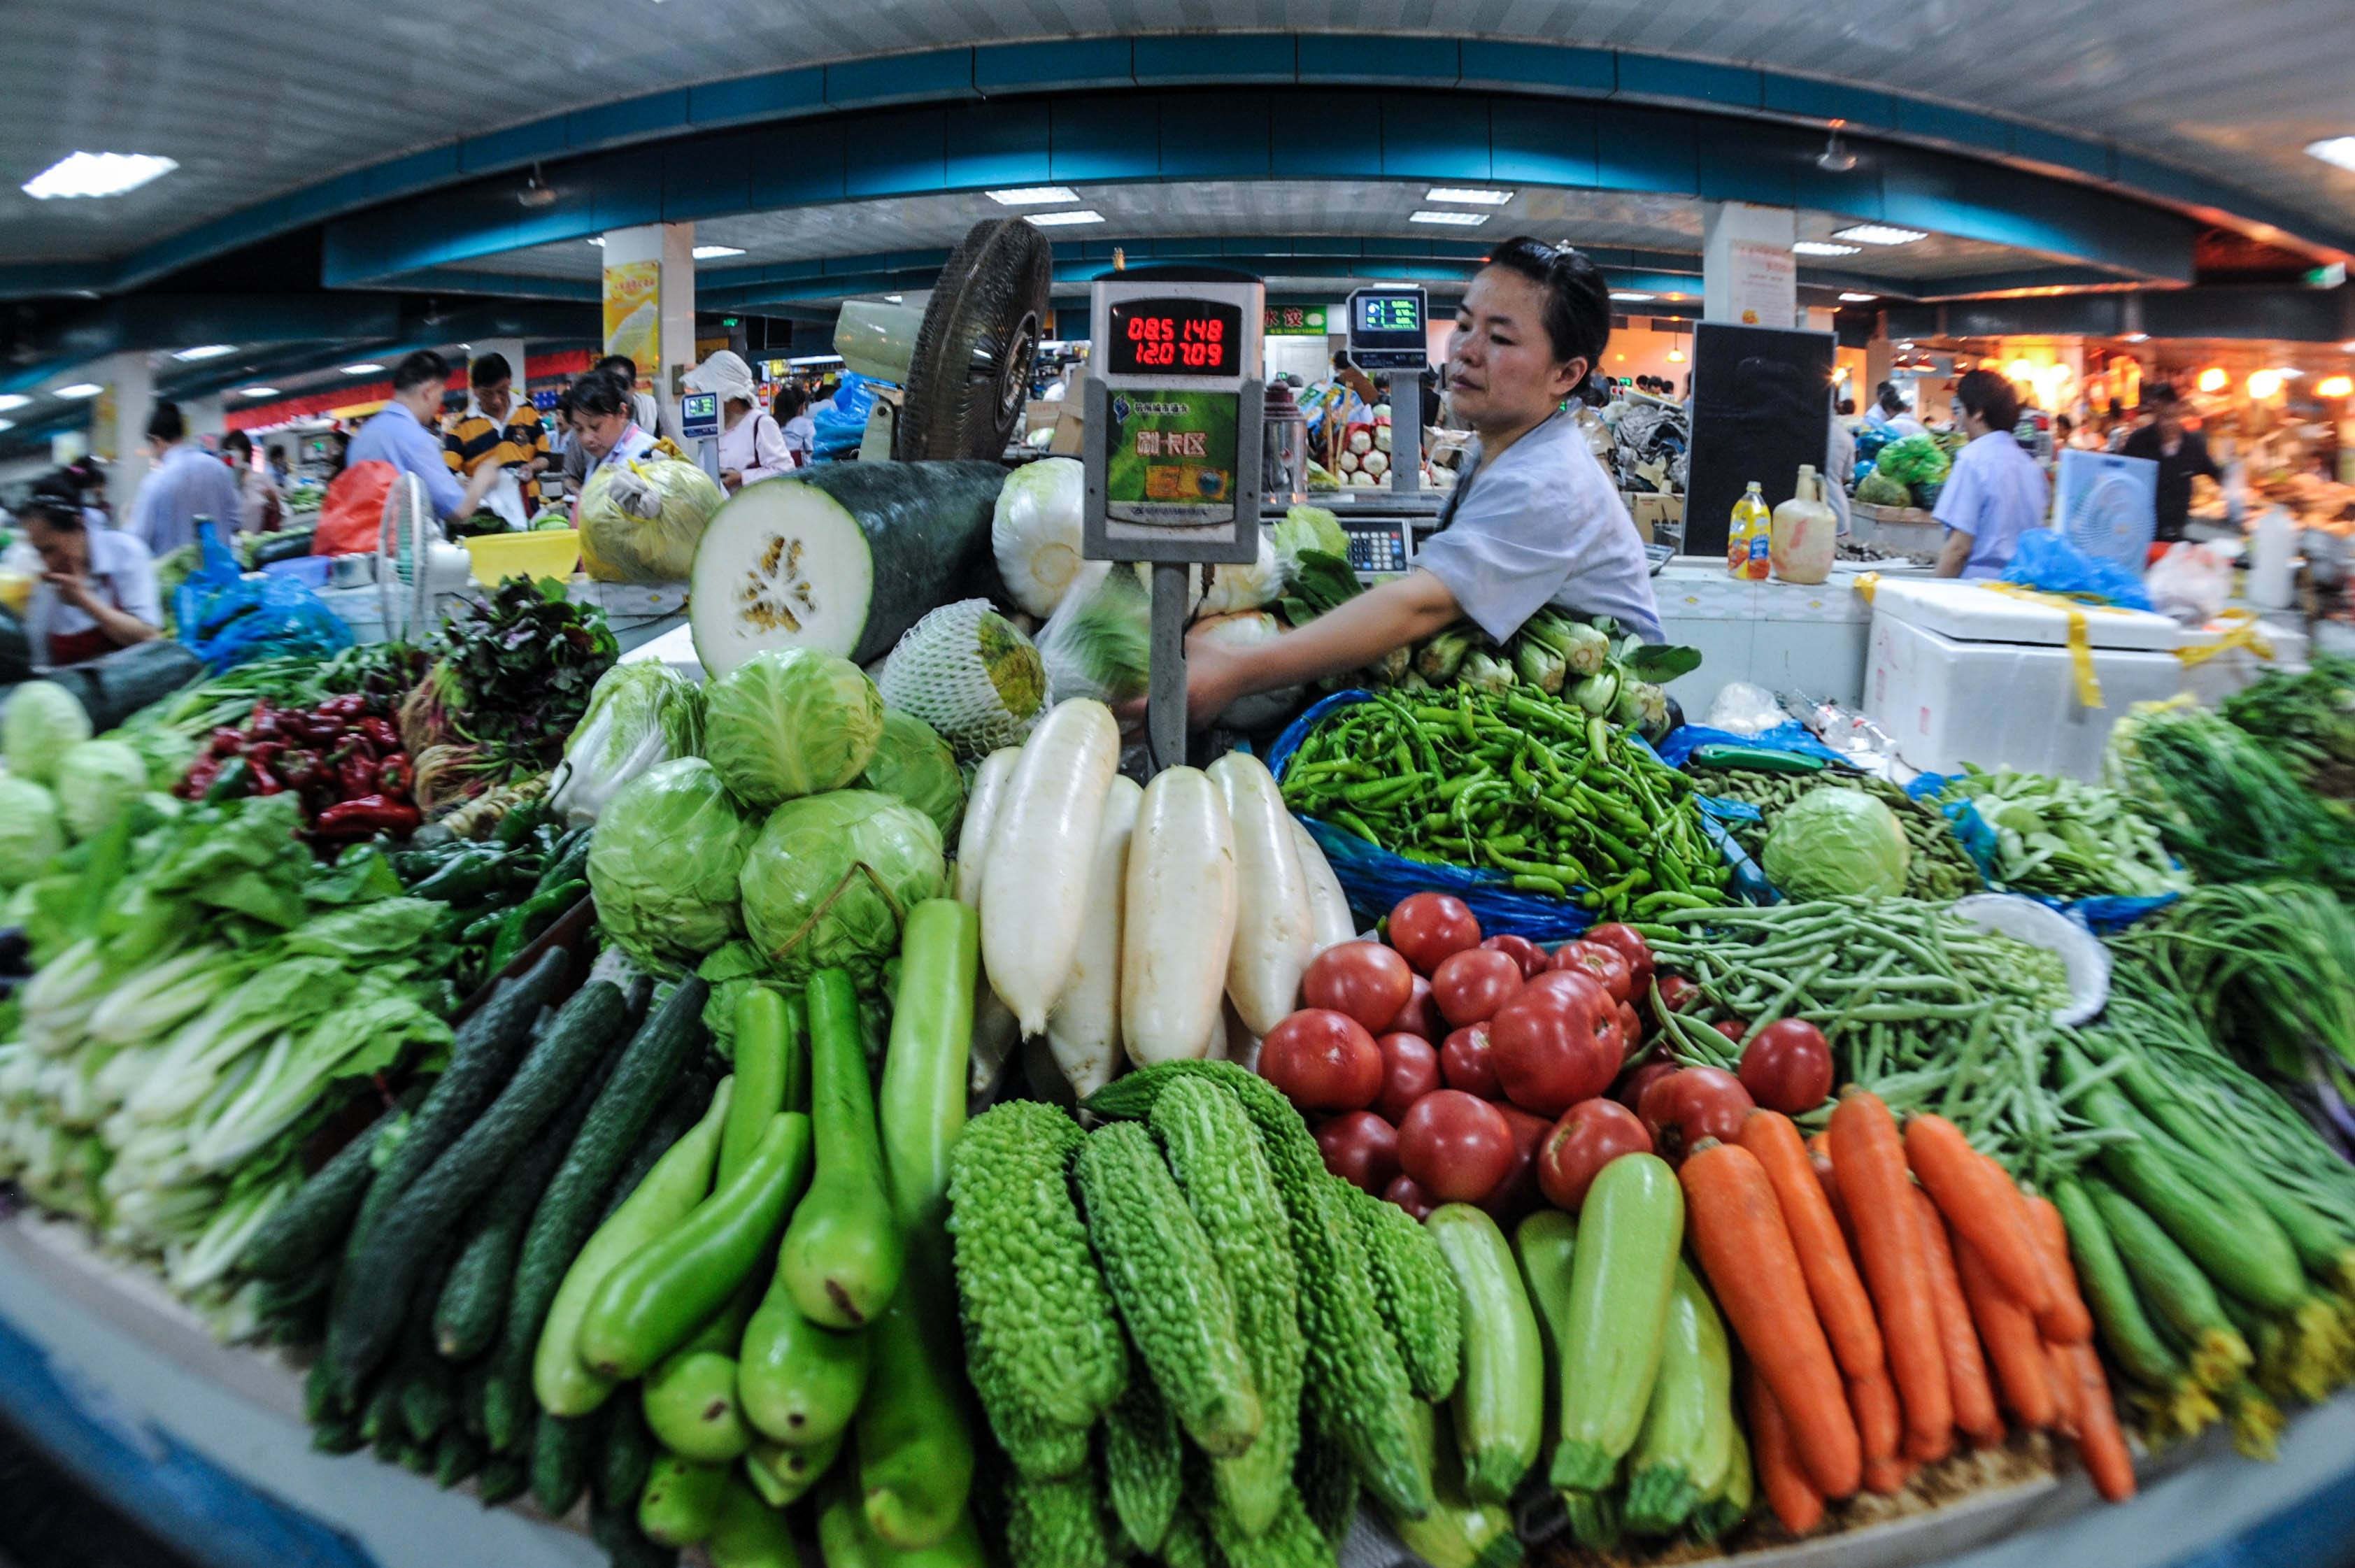 Beijing's CPI up 1.9 pct in March